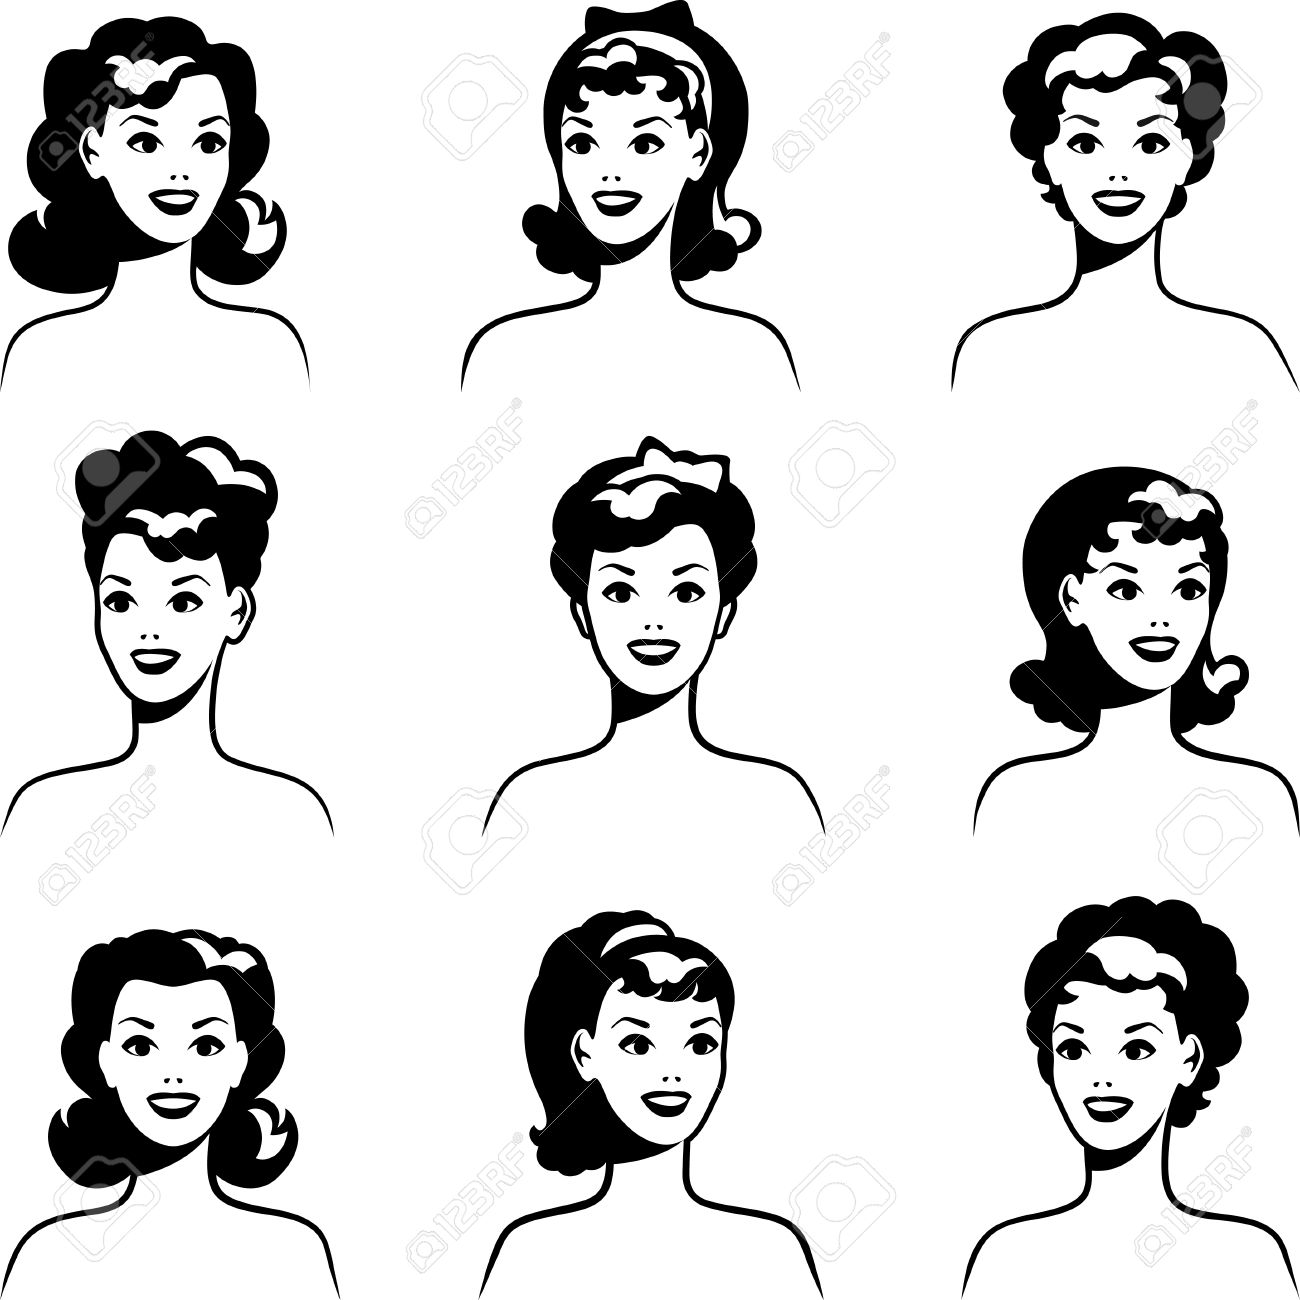 Pin up motorcycle line art jpg - Pin Up Collection Of Portraits Beautiful Pin Up Girls 1950s Style